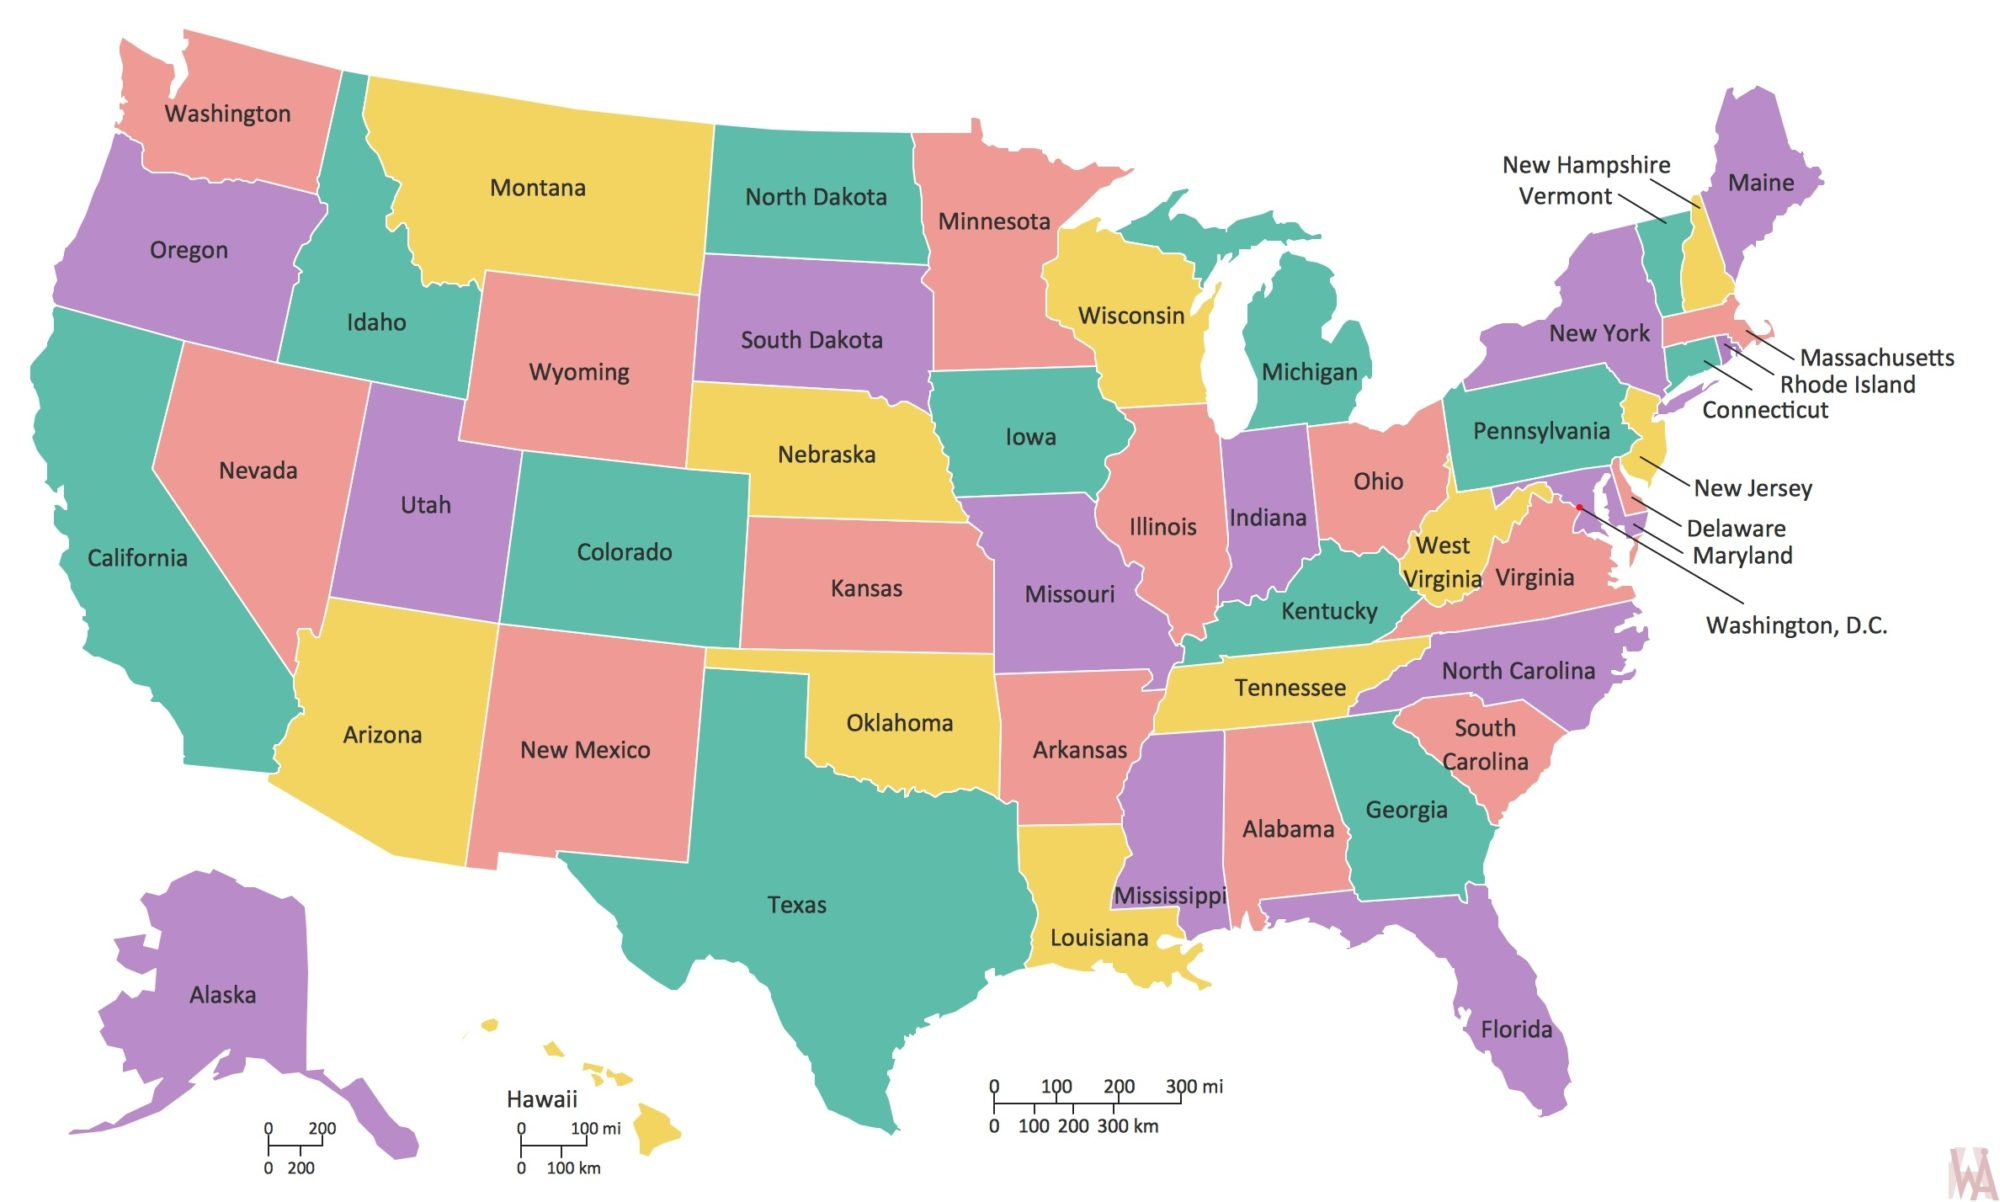 States And Major Cities Map of The USA